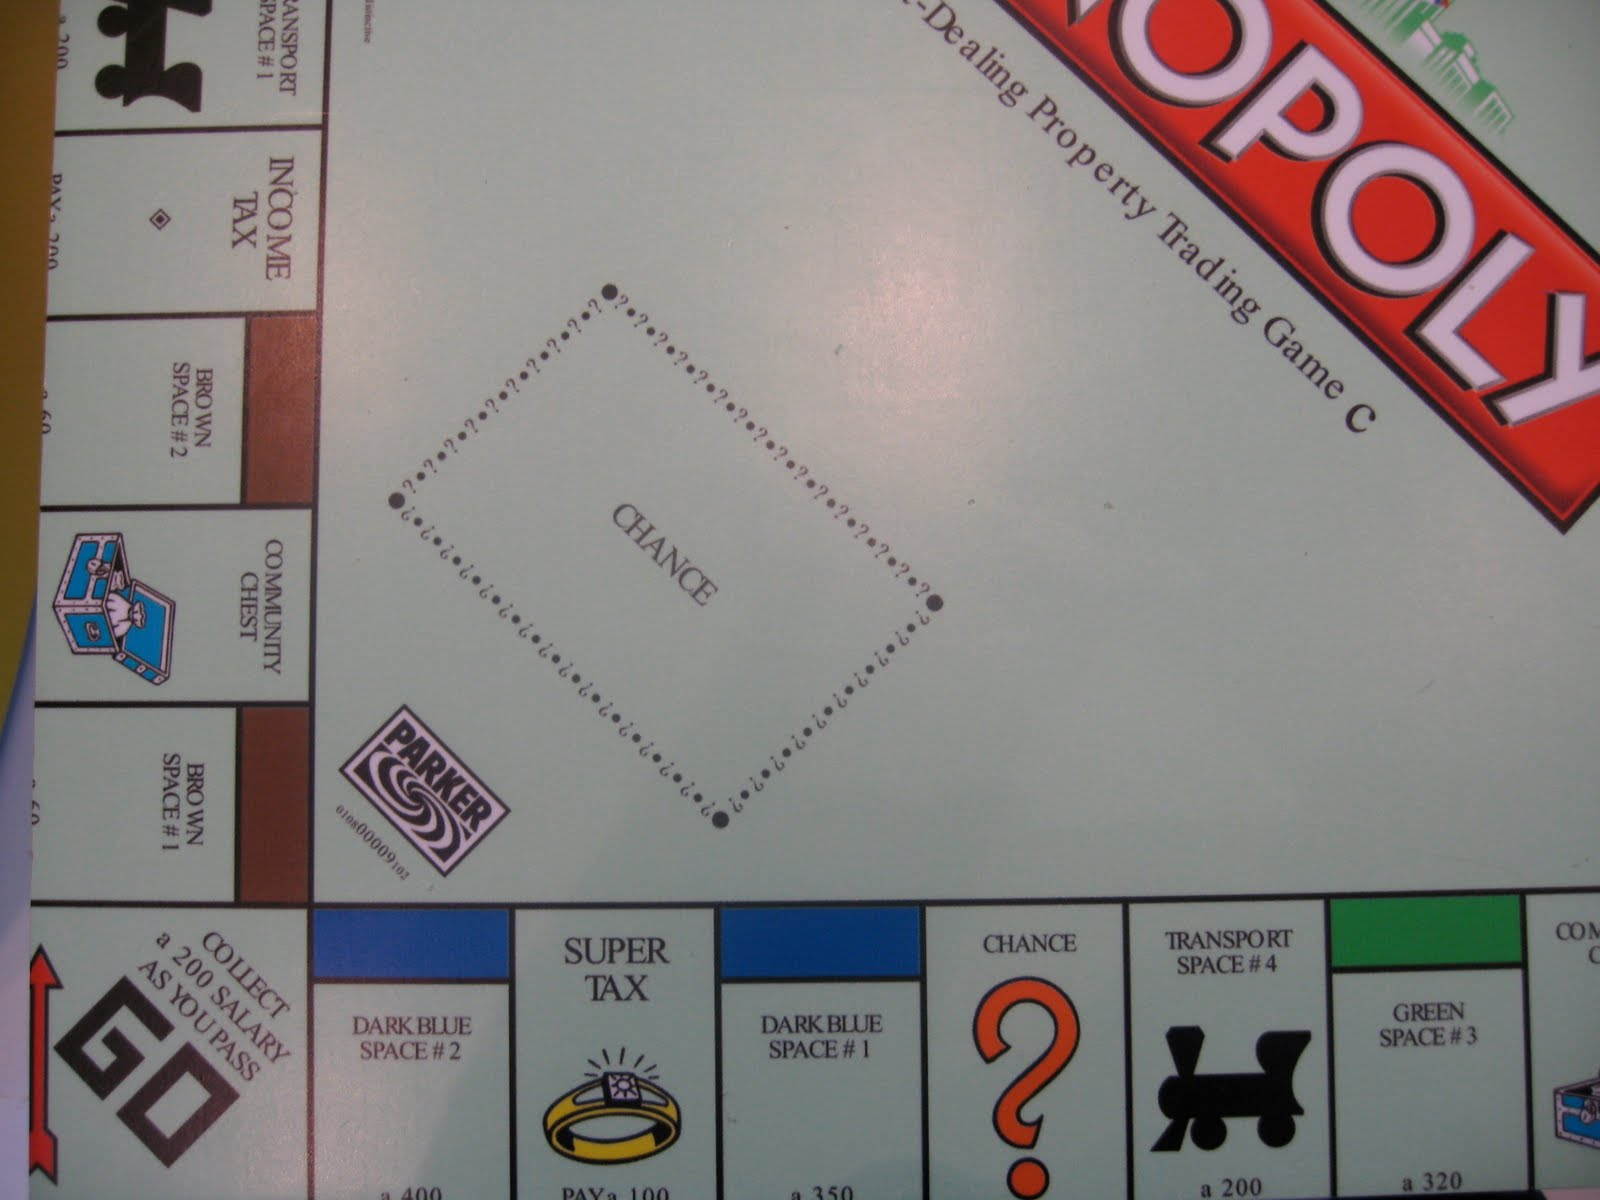 4 stations on monopoly board